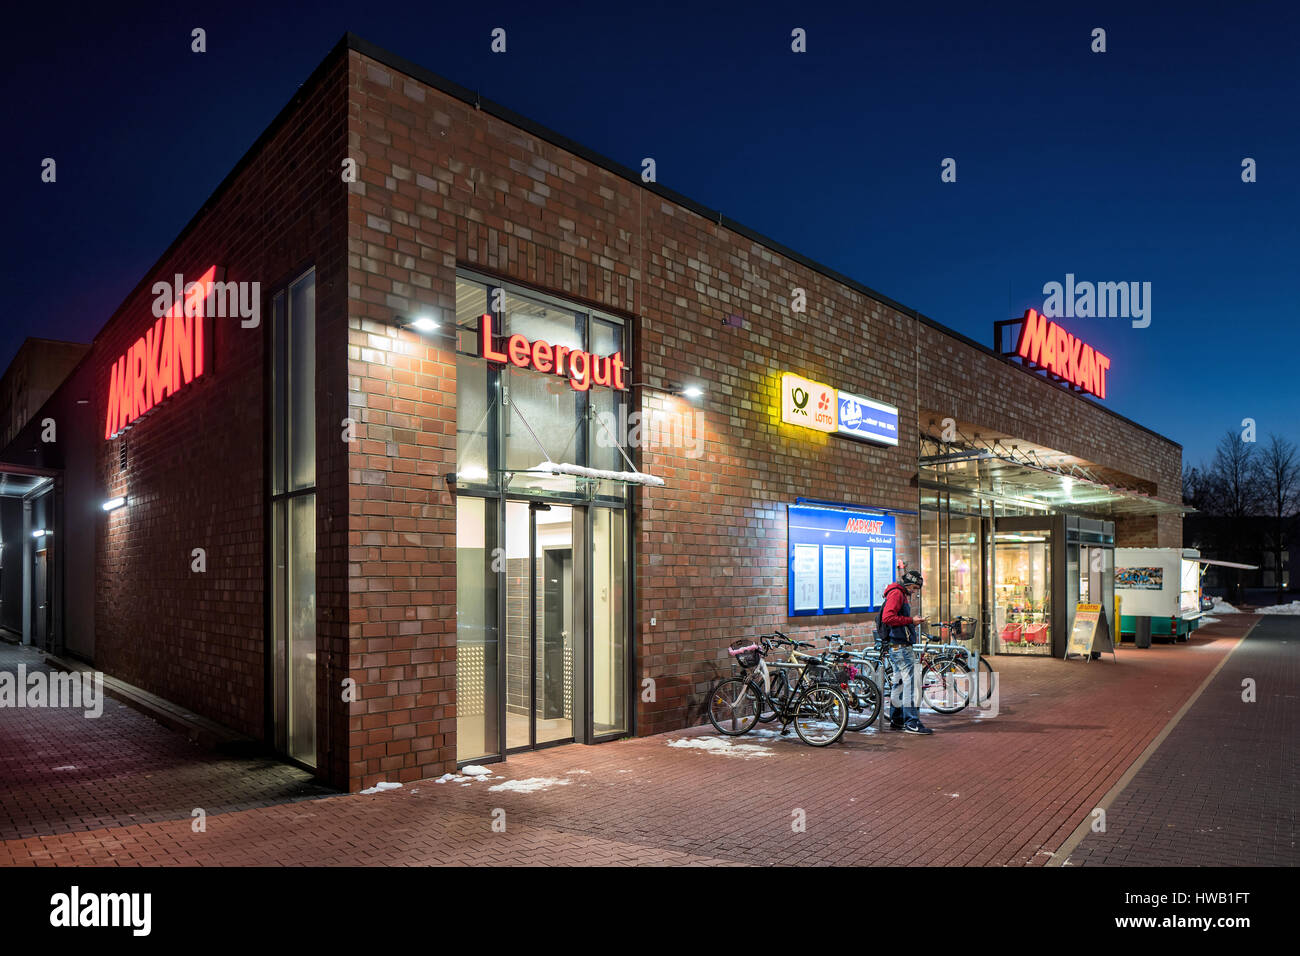 Markant supermarket in Wismar in the dark. Markant operates over 30 supermarkets in the North of Germany. - Stock Image